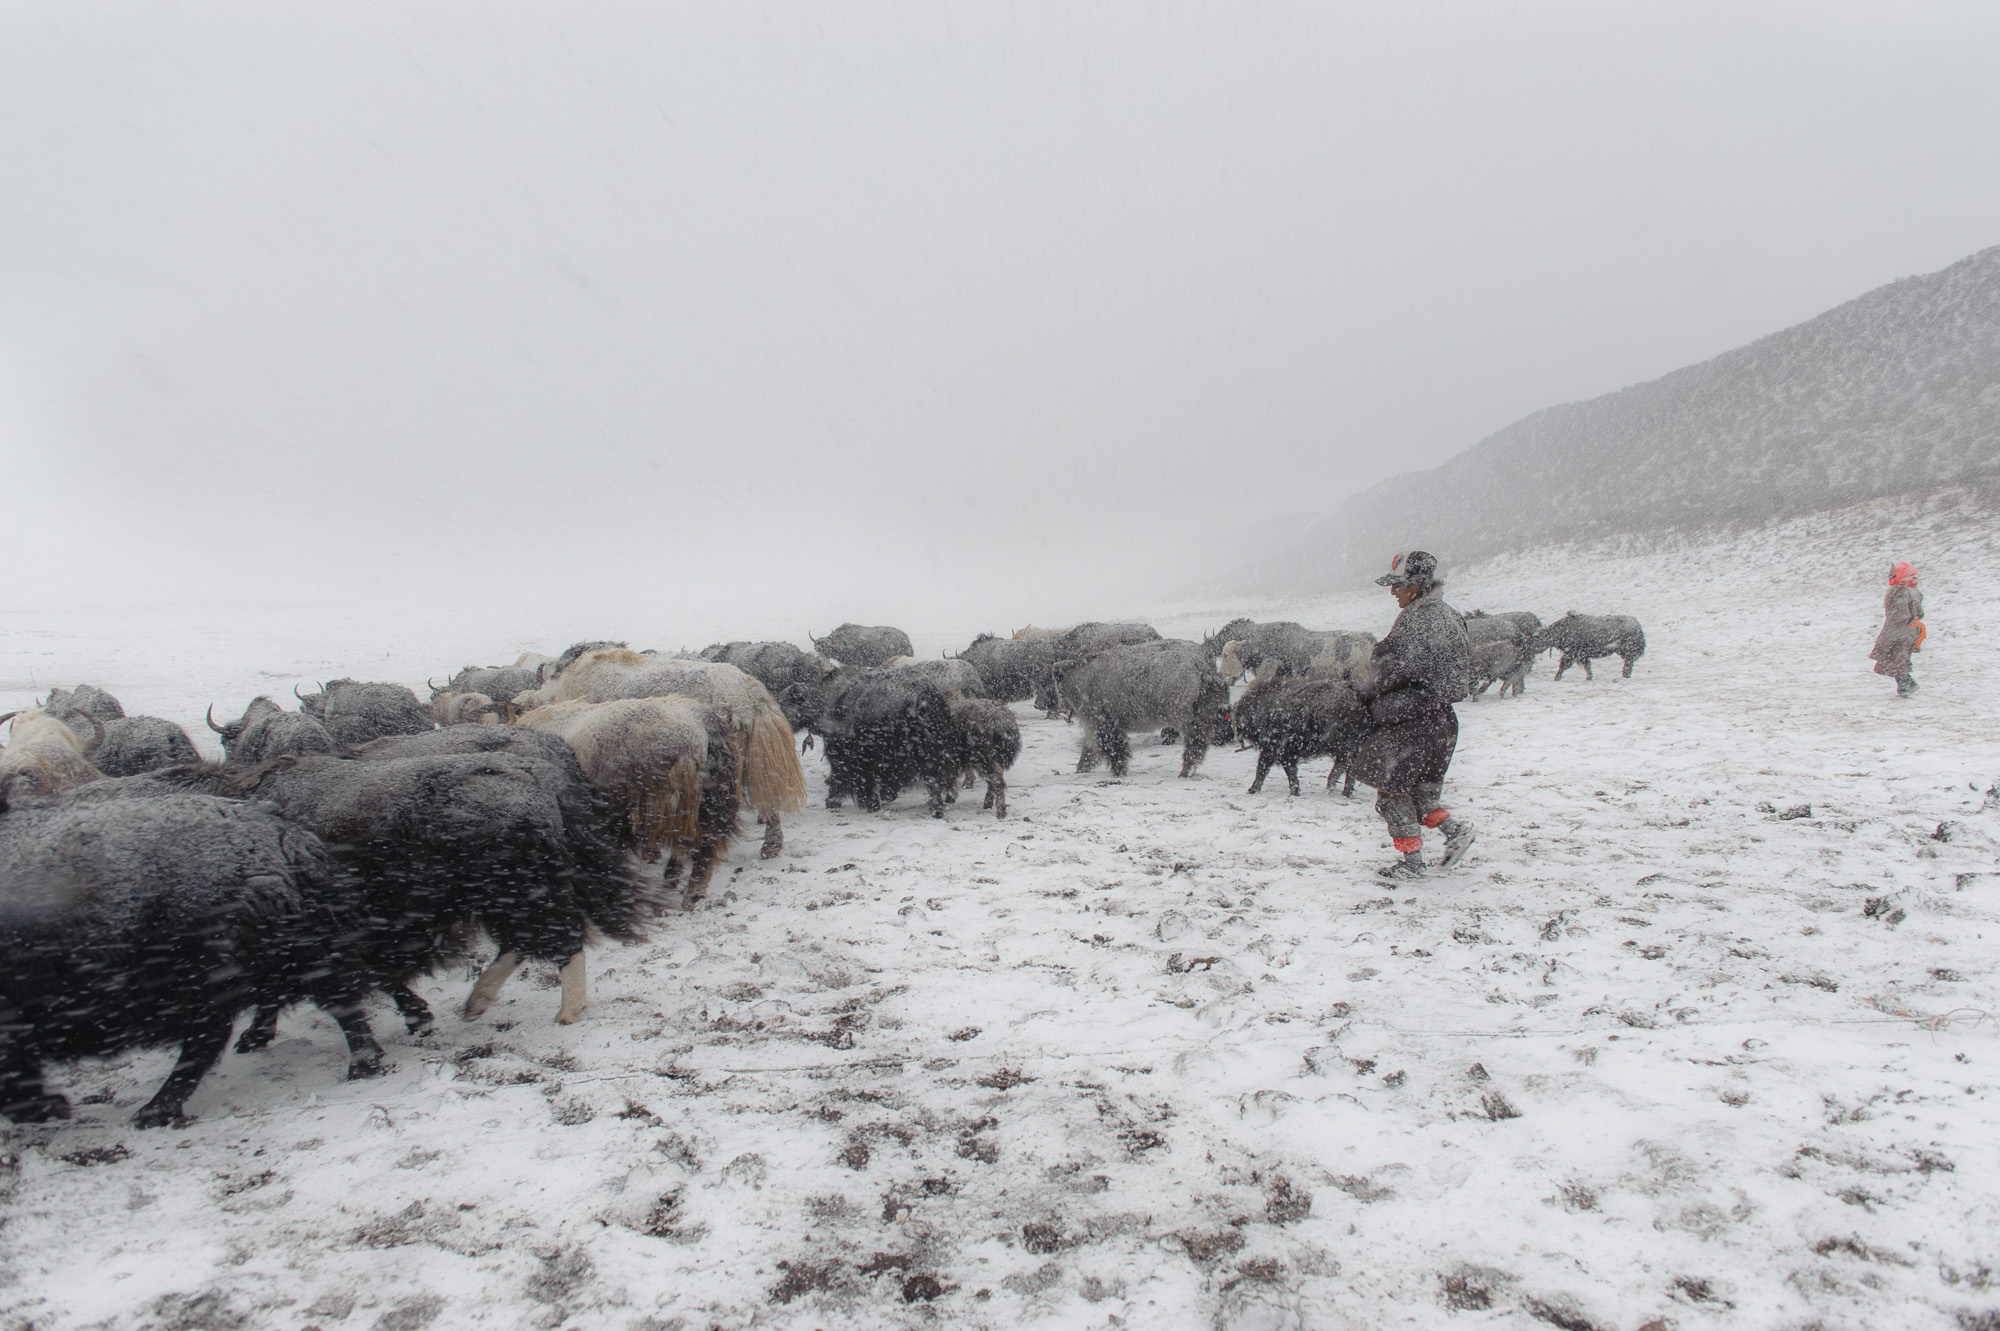 Just another day in Tibet - Life in the roof of the world, where the few remaining Tibetan nomads try to continue with ther way of life the way it has always been.